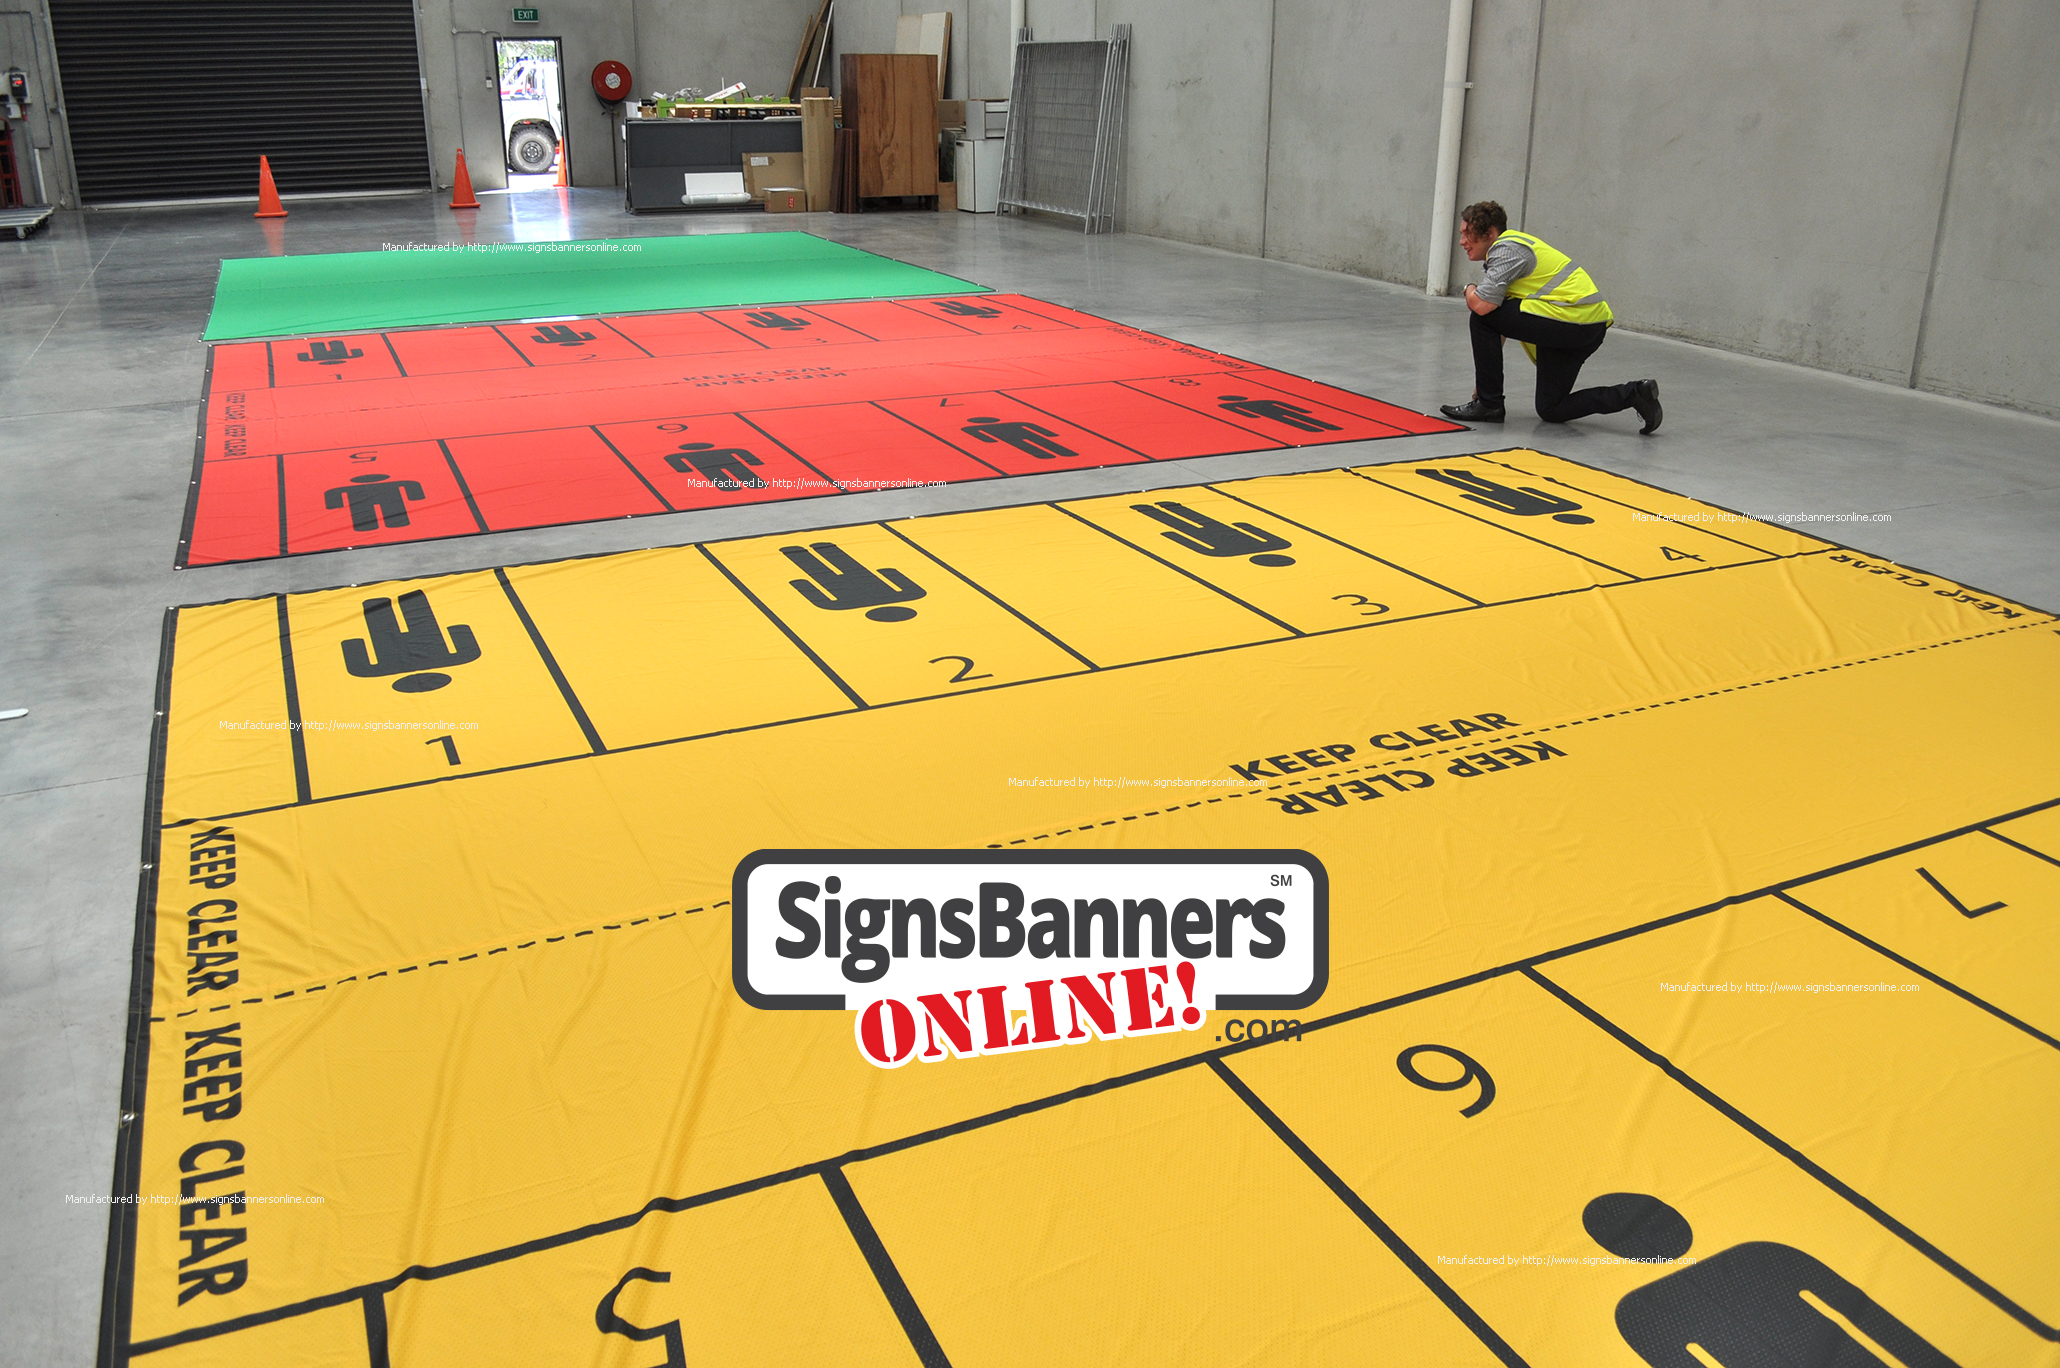 Emergency Training - MEDIC USA. Shows the PERSON symbol silhoutte laid out on the floor for positioning of medical teams with sufficient space to move and operate. Ideal for triage training and sitations of emergency. These banners signs are manufactured by Signs Banners Online dot com